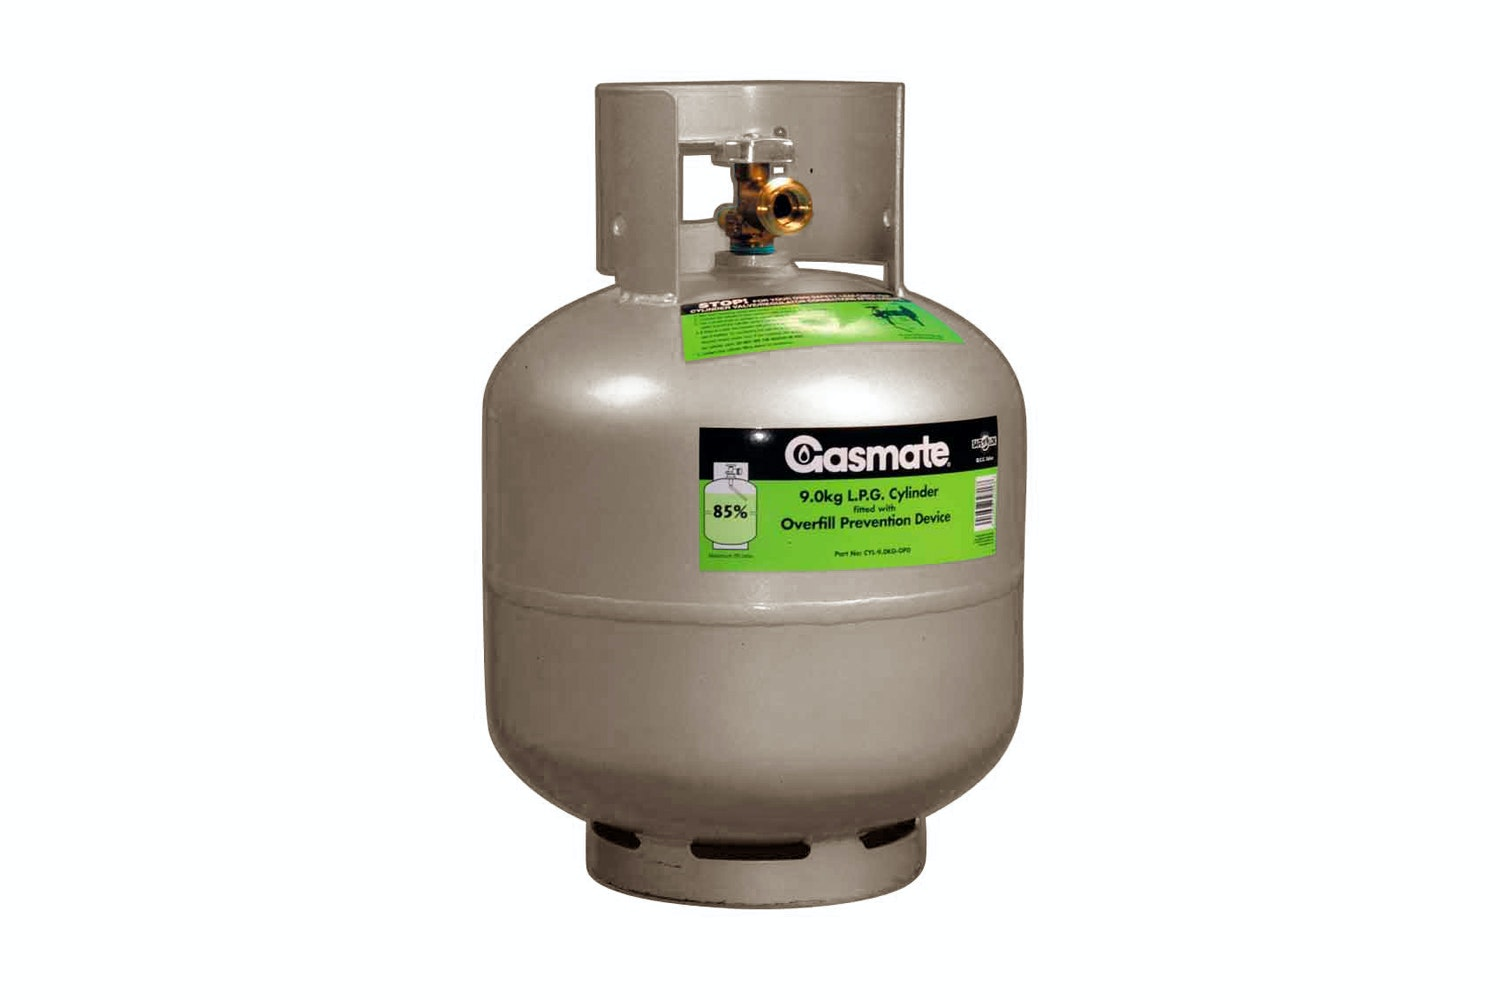 Gasmate 9kg LPG Gas Cylinder | Harvey Norman New Zealand